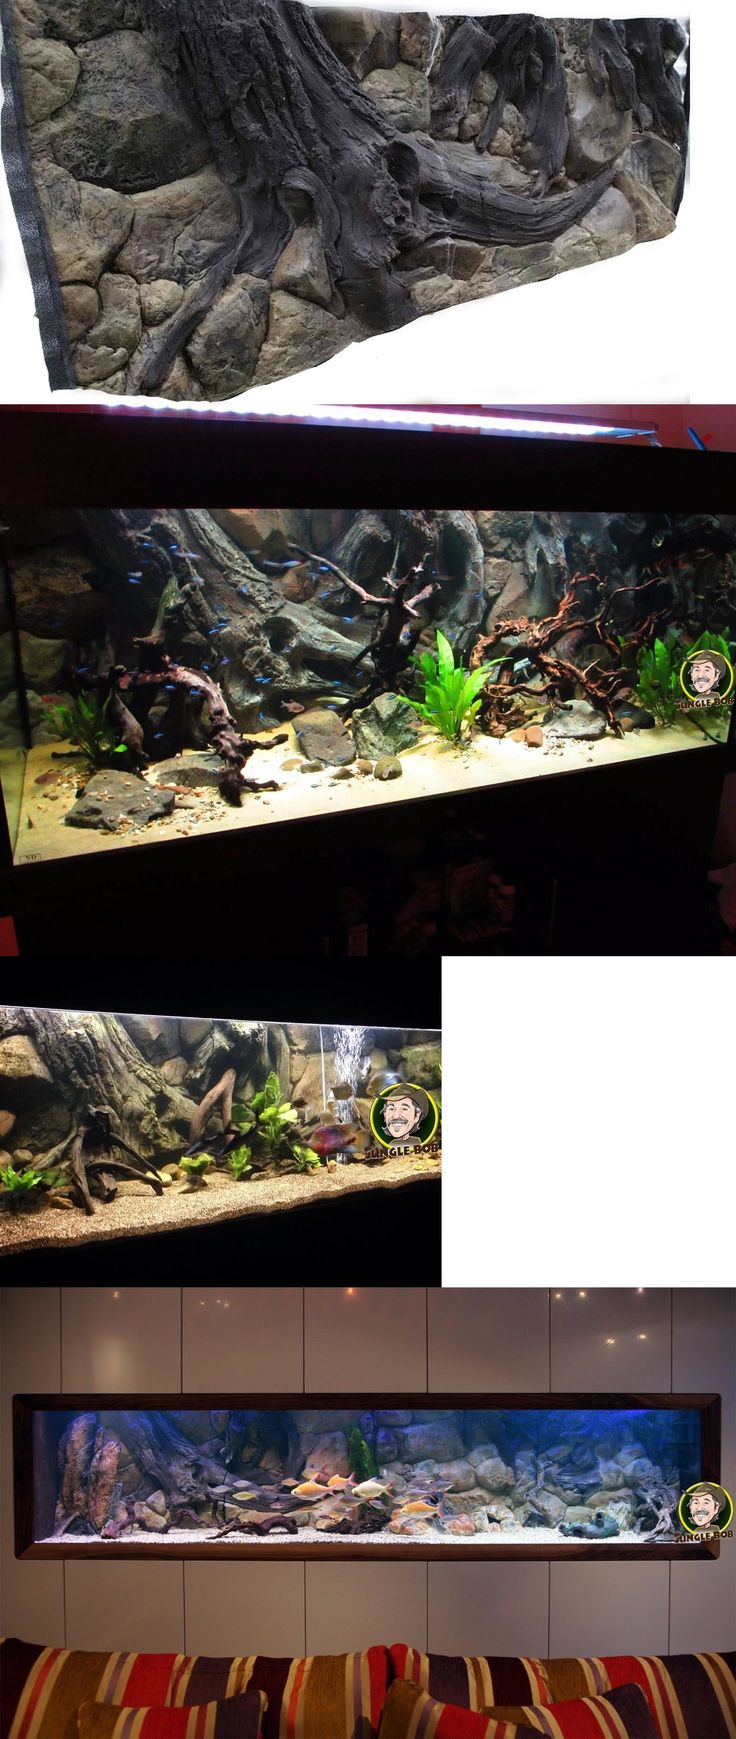 Aquariums and Tanks 20755: Jungle Bob 3D Amazon Background 72X23 For 125 Gallon Aquarium Decoration 7869 -> BUY IT NOW ONLY: $378.99 on eBay!